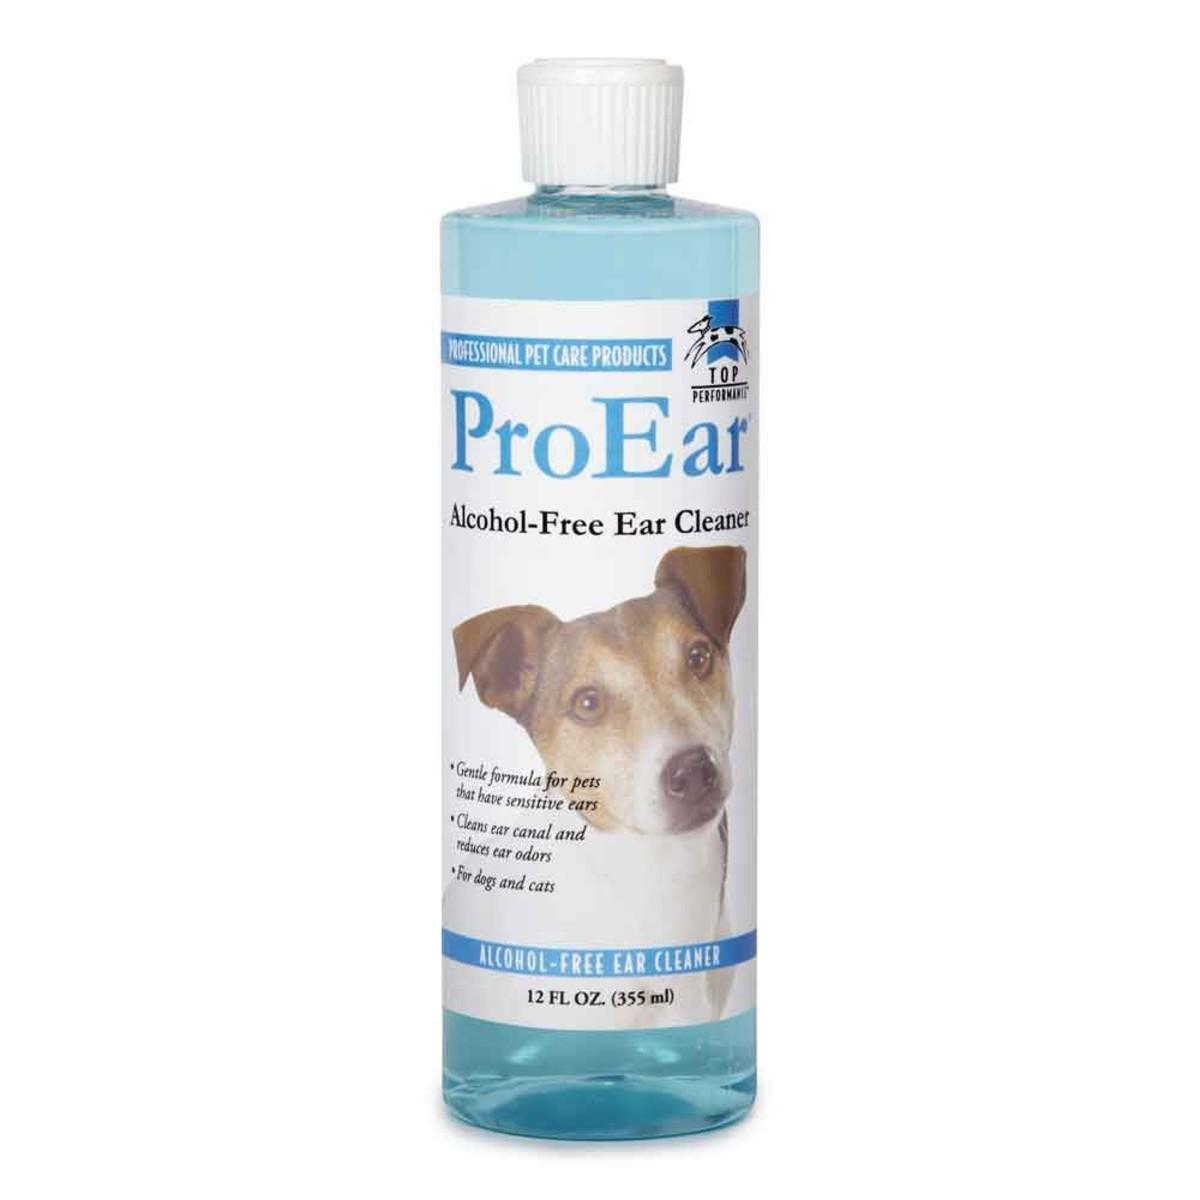 Top Performance ProEar Alcohol-Free Ear Cleaner for Dogs and Cats